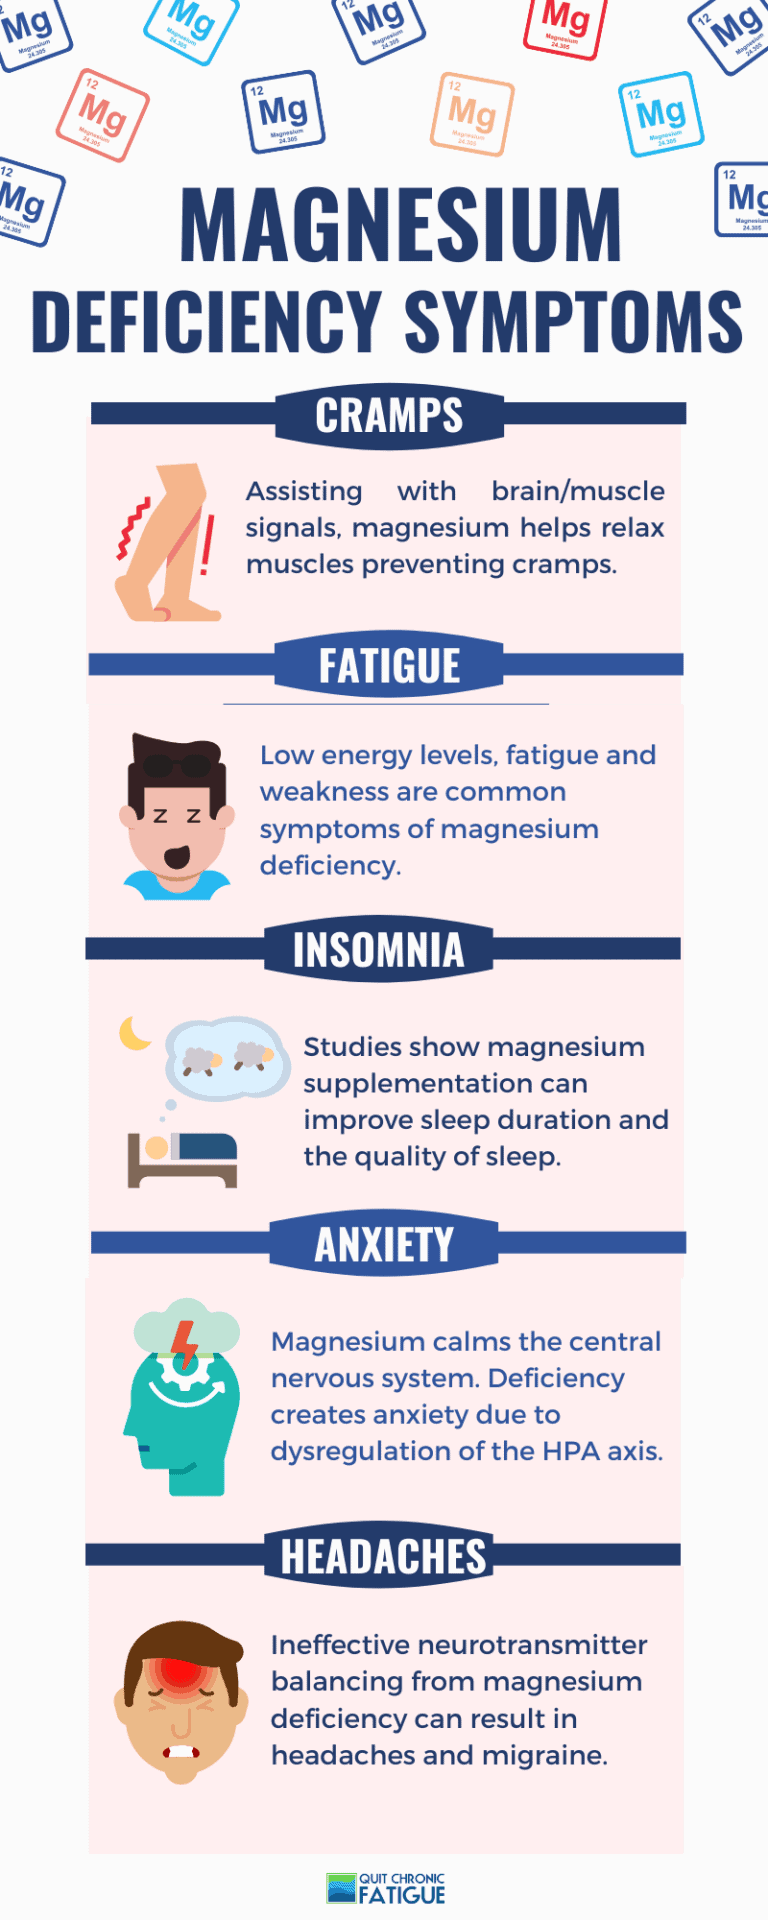 is 500 mg of magnesium too much